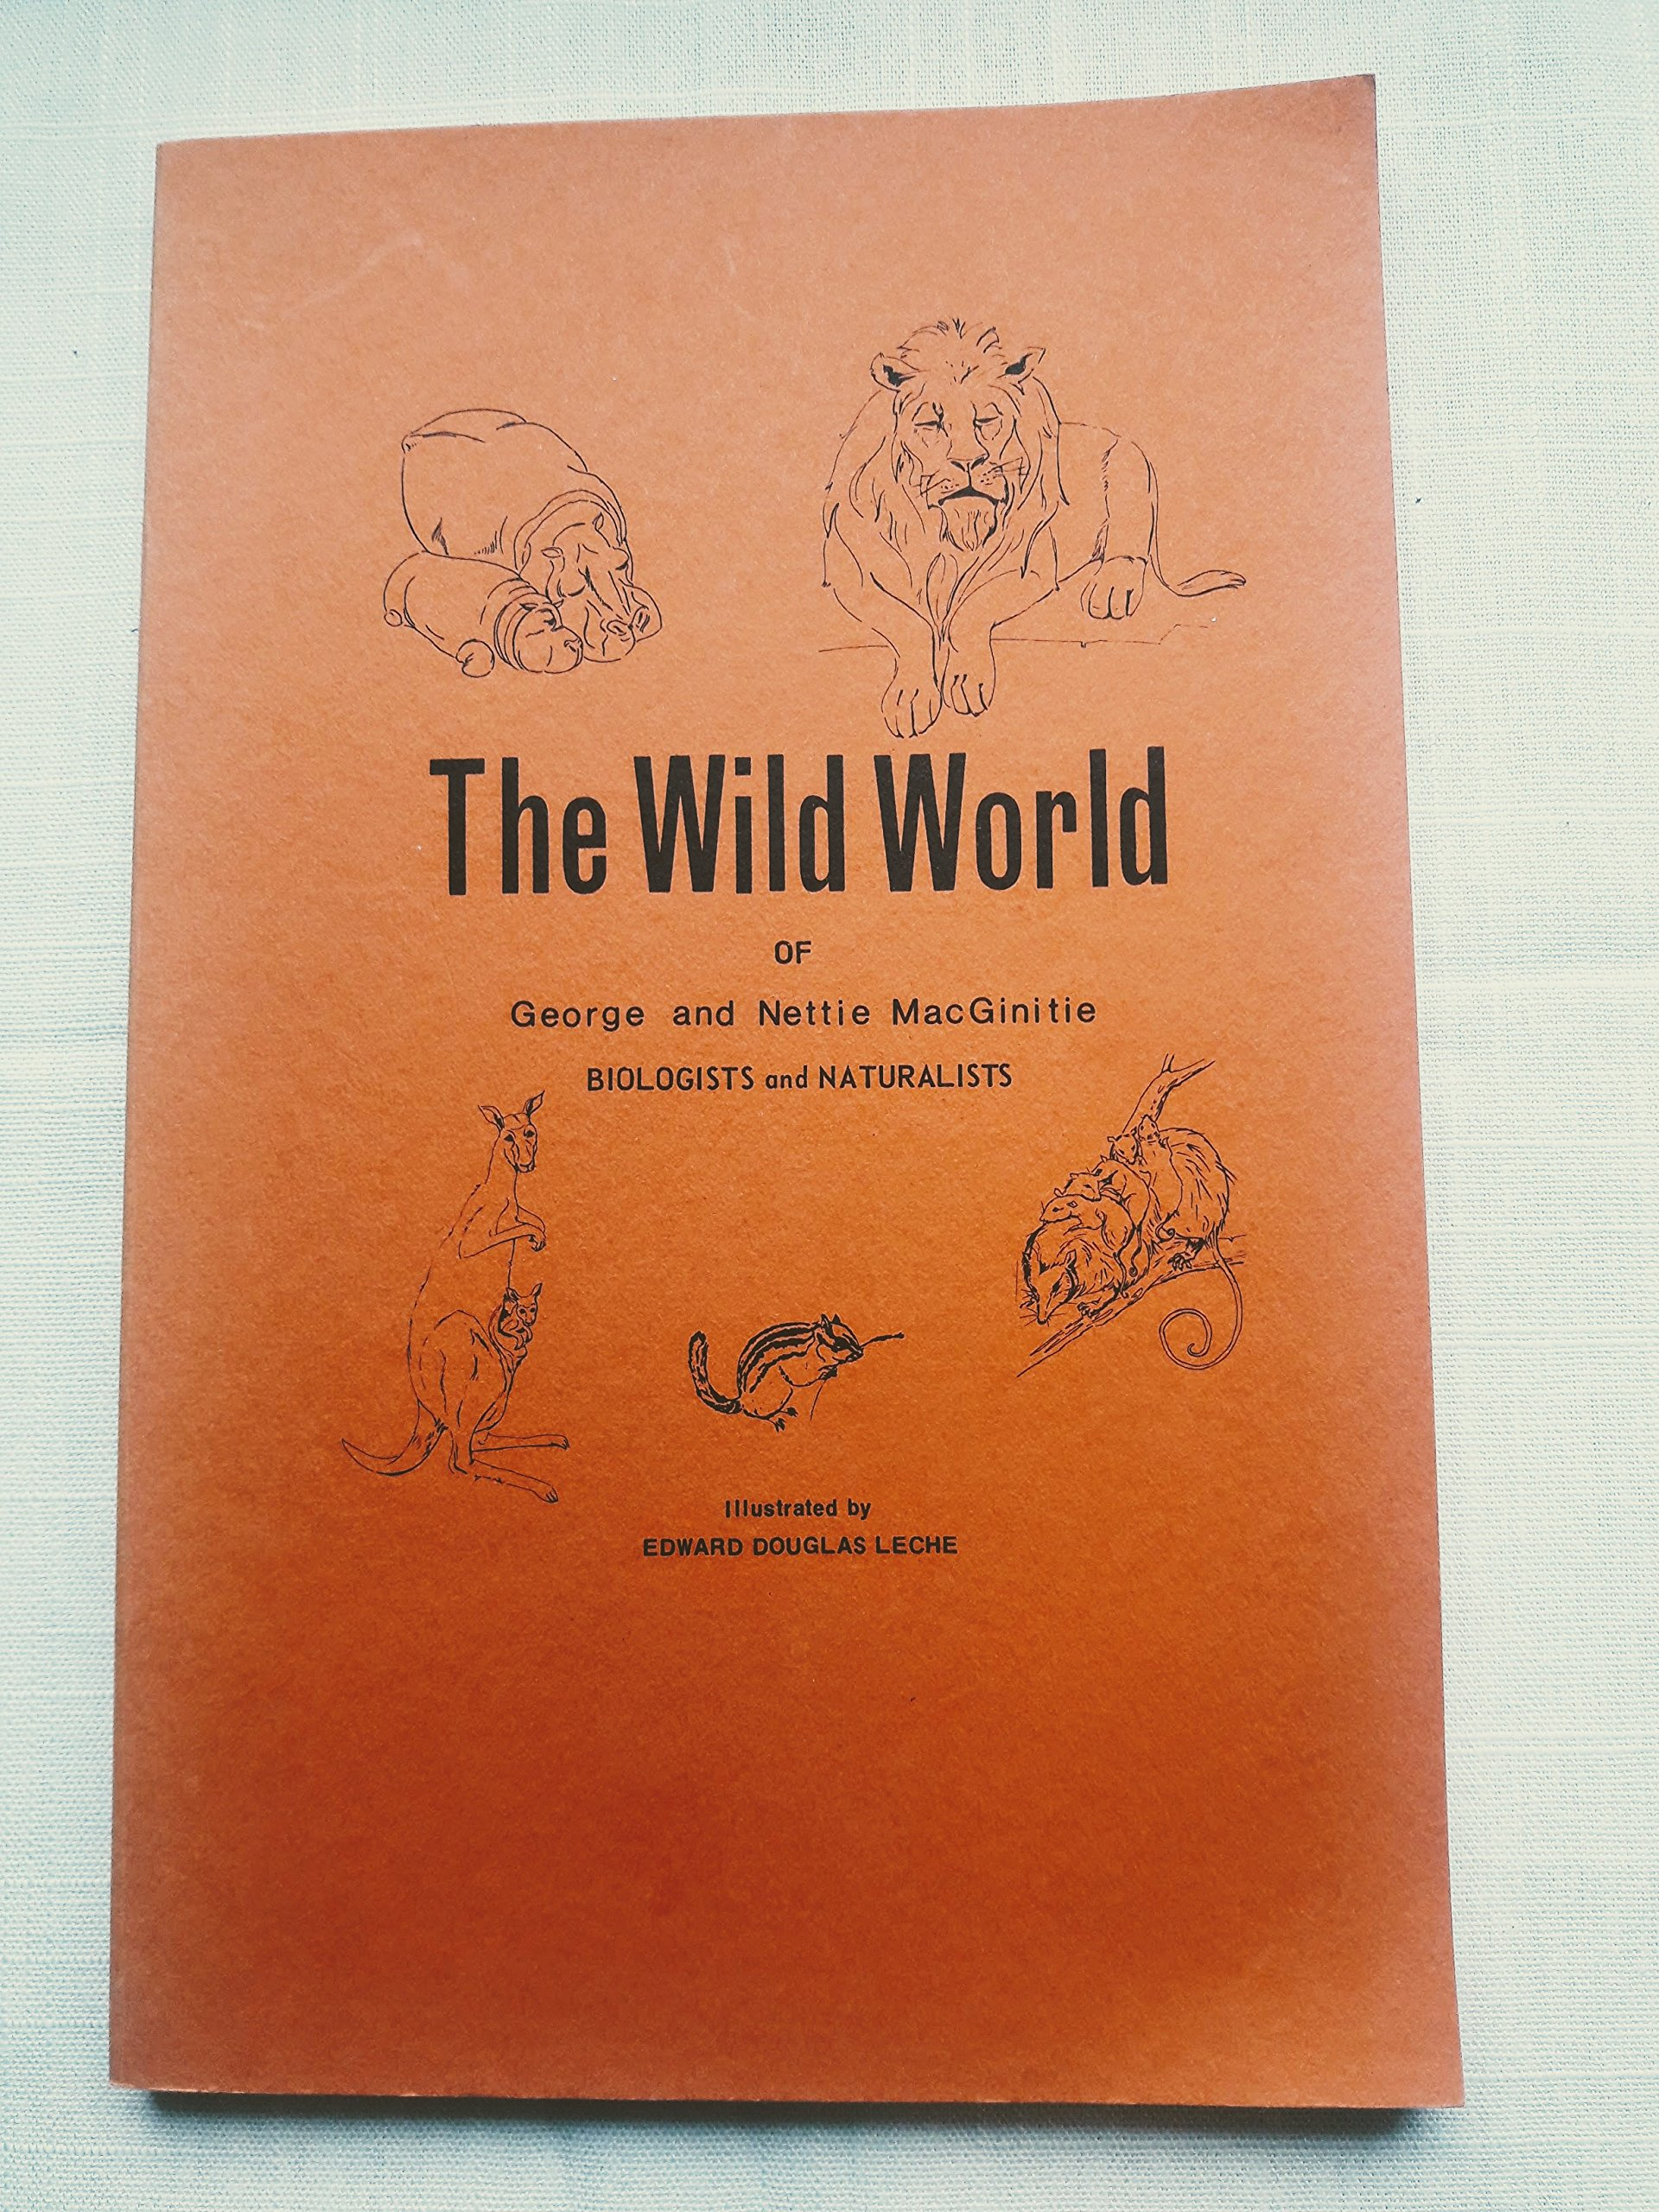 The wild world of George and Nettie MacGinitie, biologists and naturalists, MacGinitie, G. E